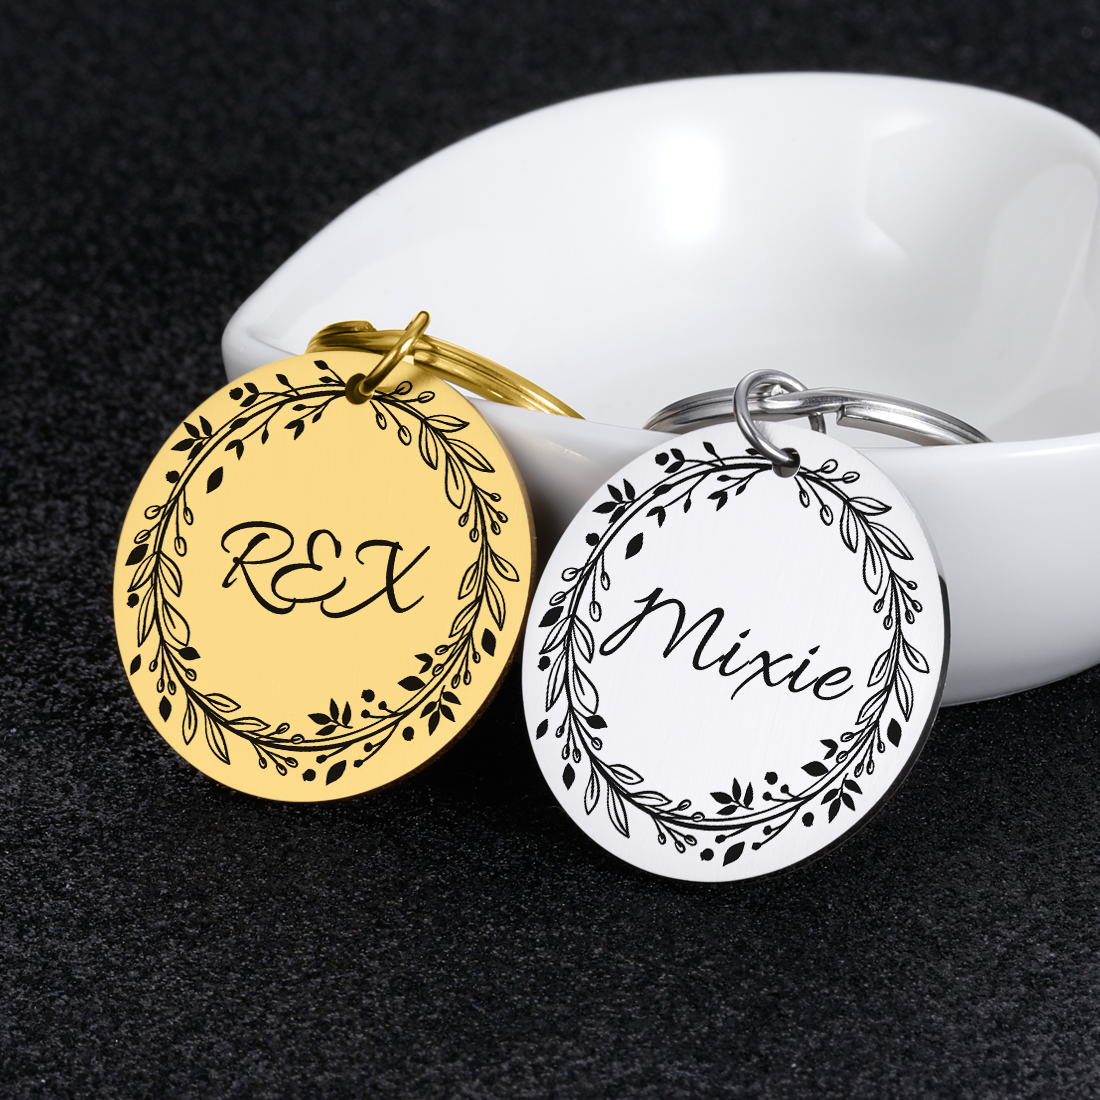 Personalized Tags Anti-lost Dog ID Tags Gifts for Dog Lovers Pet Collar Tags for Dog Owner Engraved Pet Tag New Puppy Tag Gifts